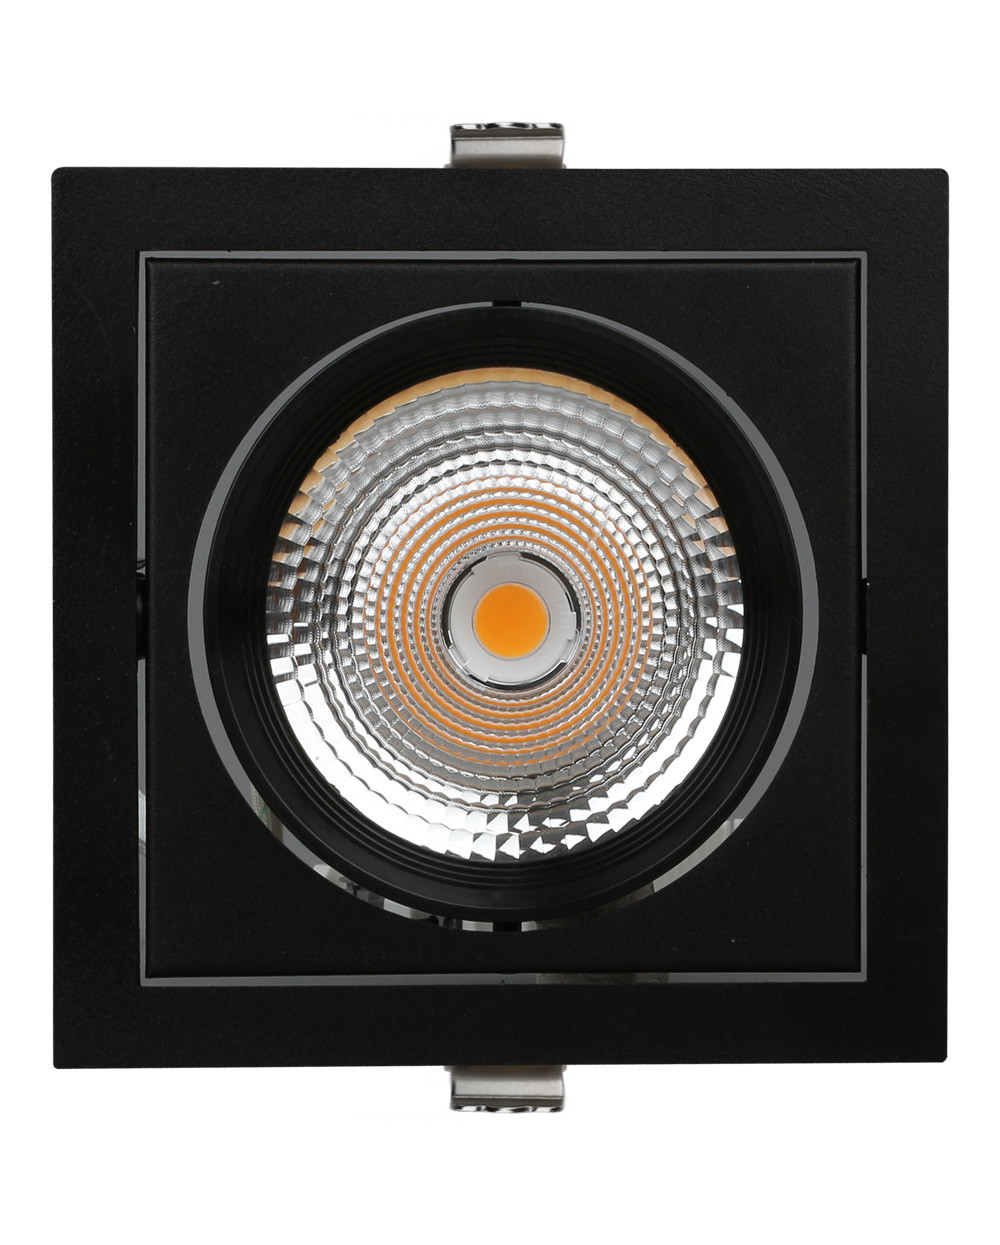 ZAIDA 20W Oynar Başlı led Downlight - ALC.688-20